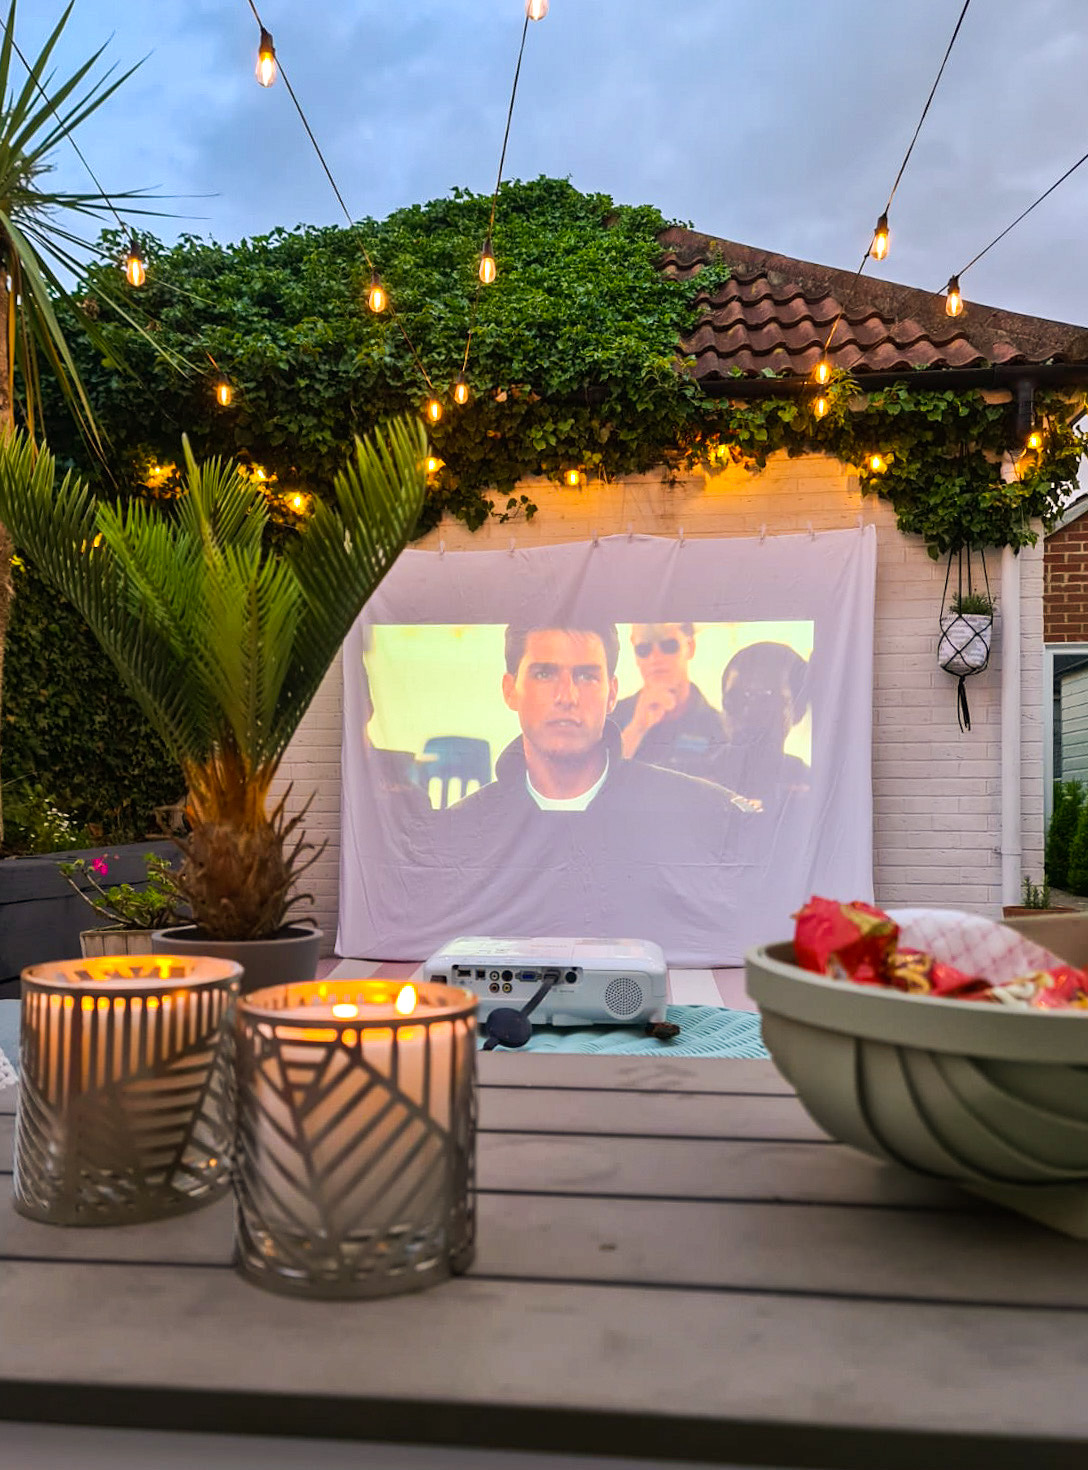 OUR DIY GARDEN MOVIE NIGHT